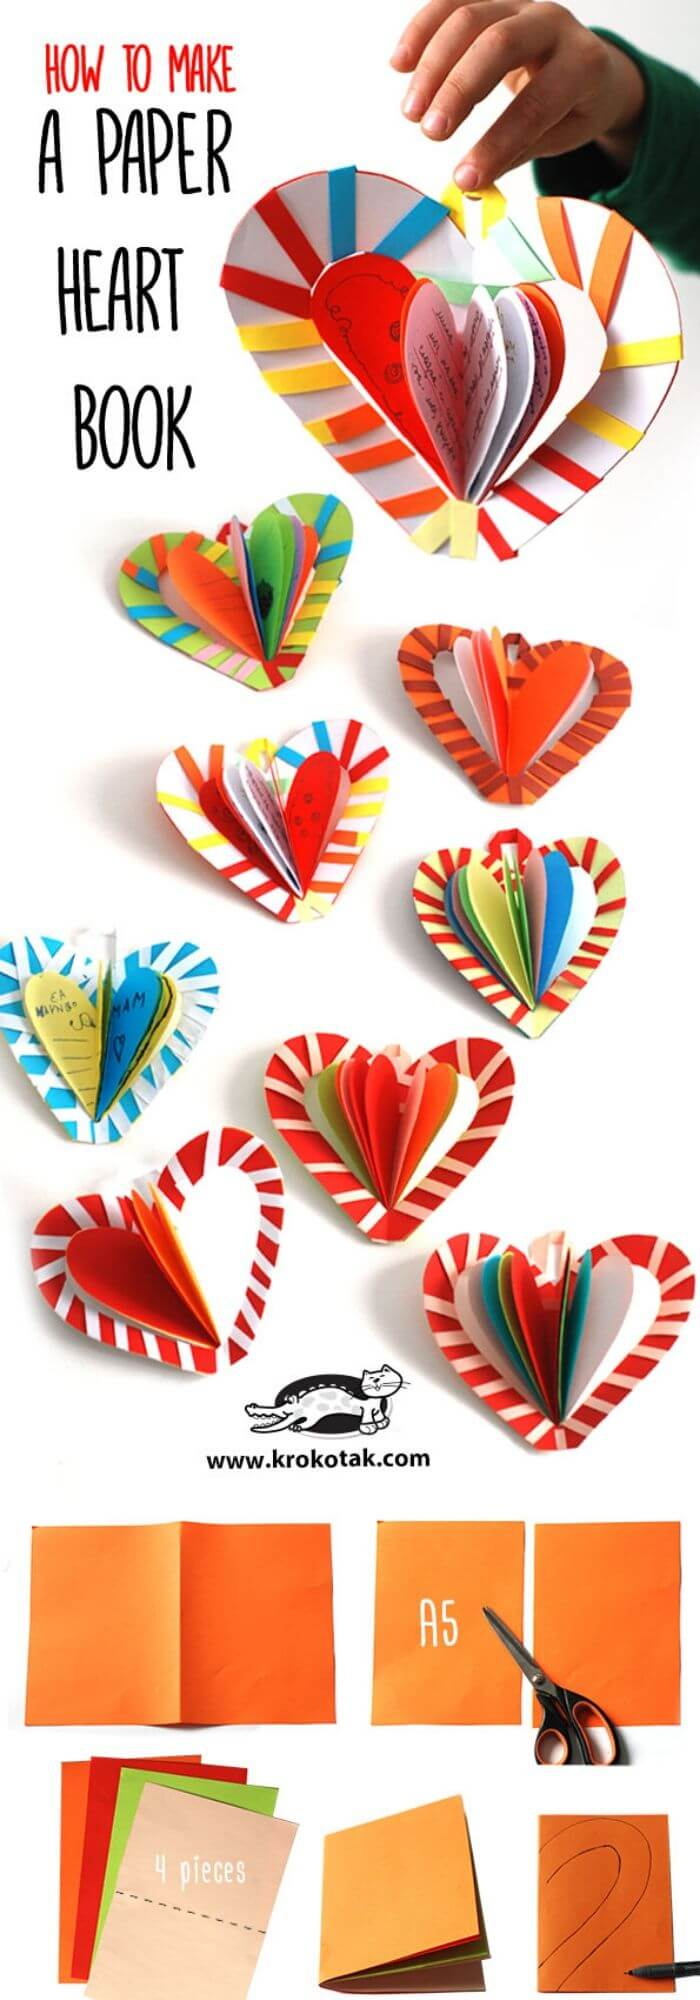 DIY Paper Heart Book | Heart-Shaped Crafts For Valentine's Day